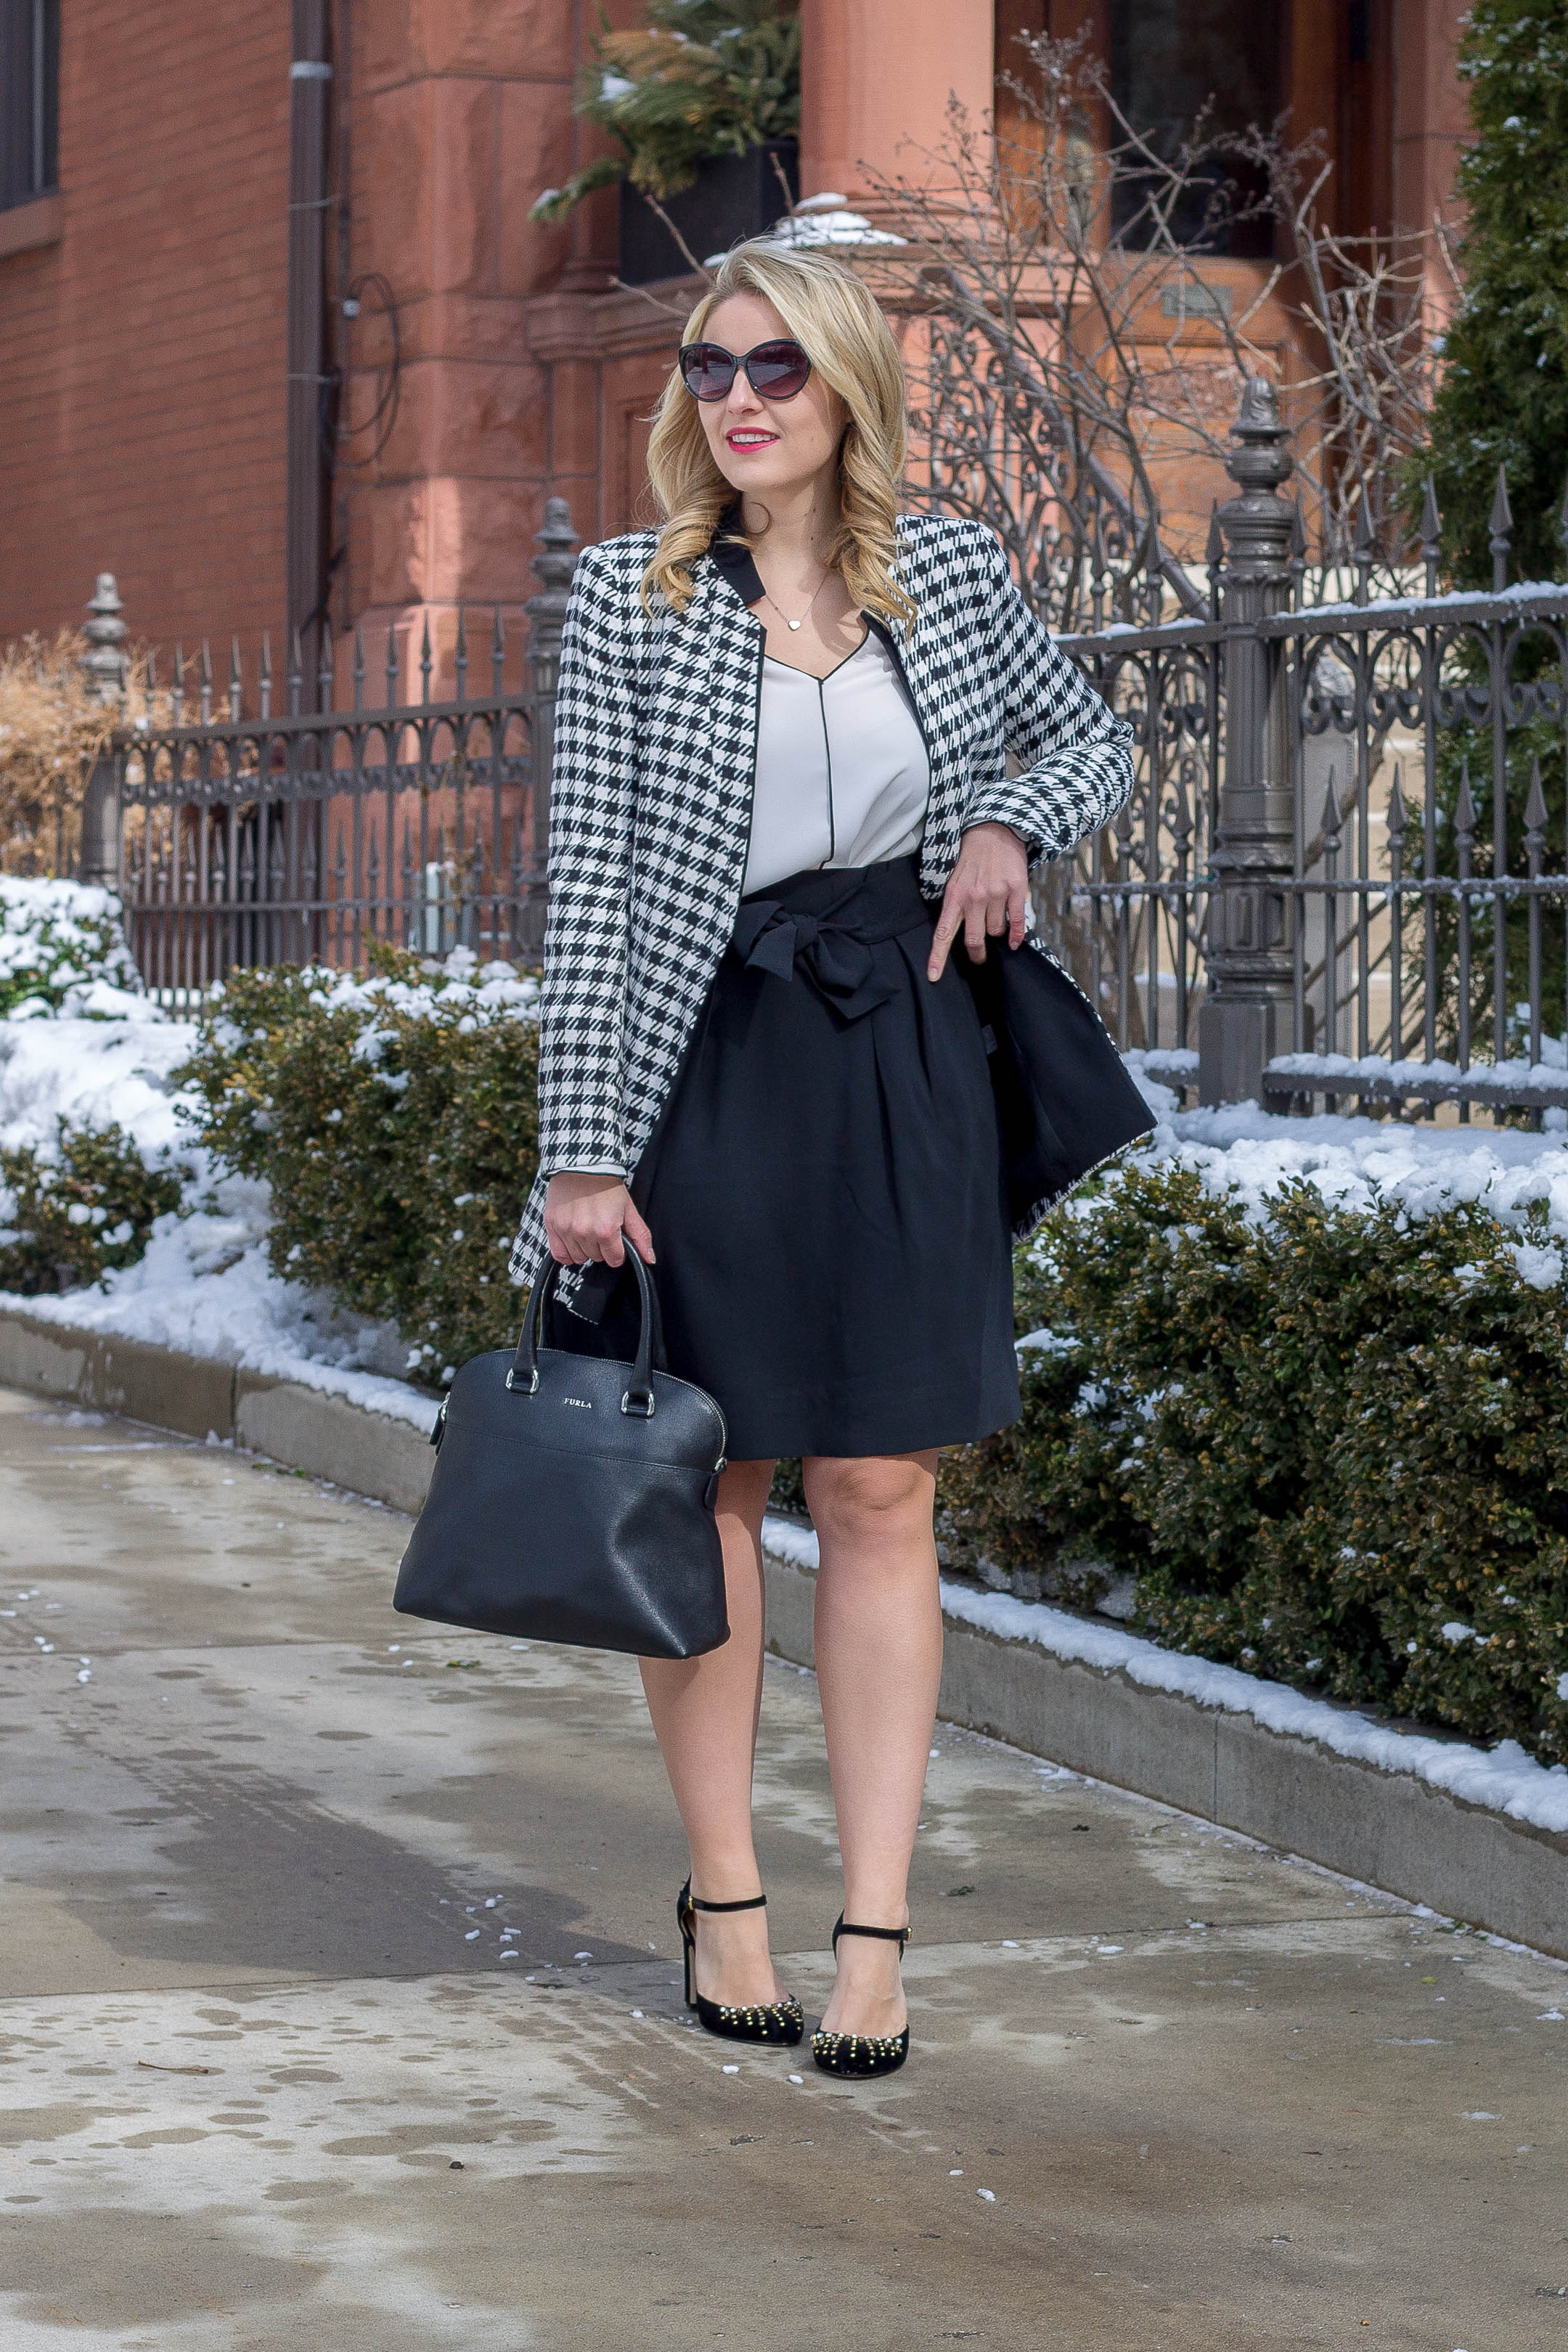 How to wear a houndstooth coat this winter season